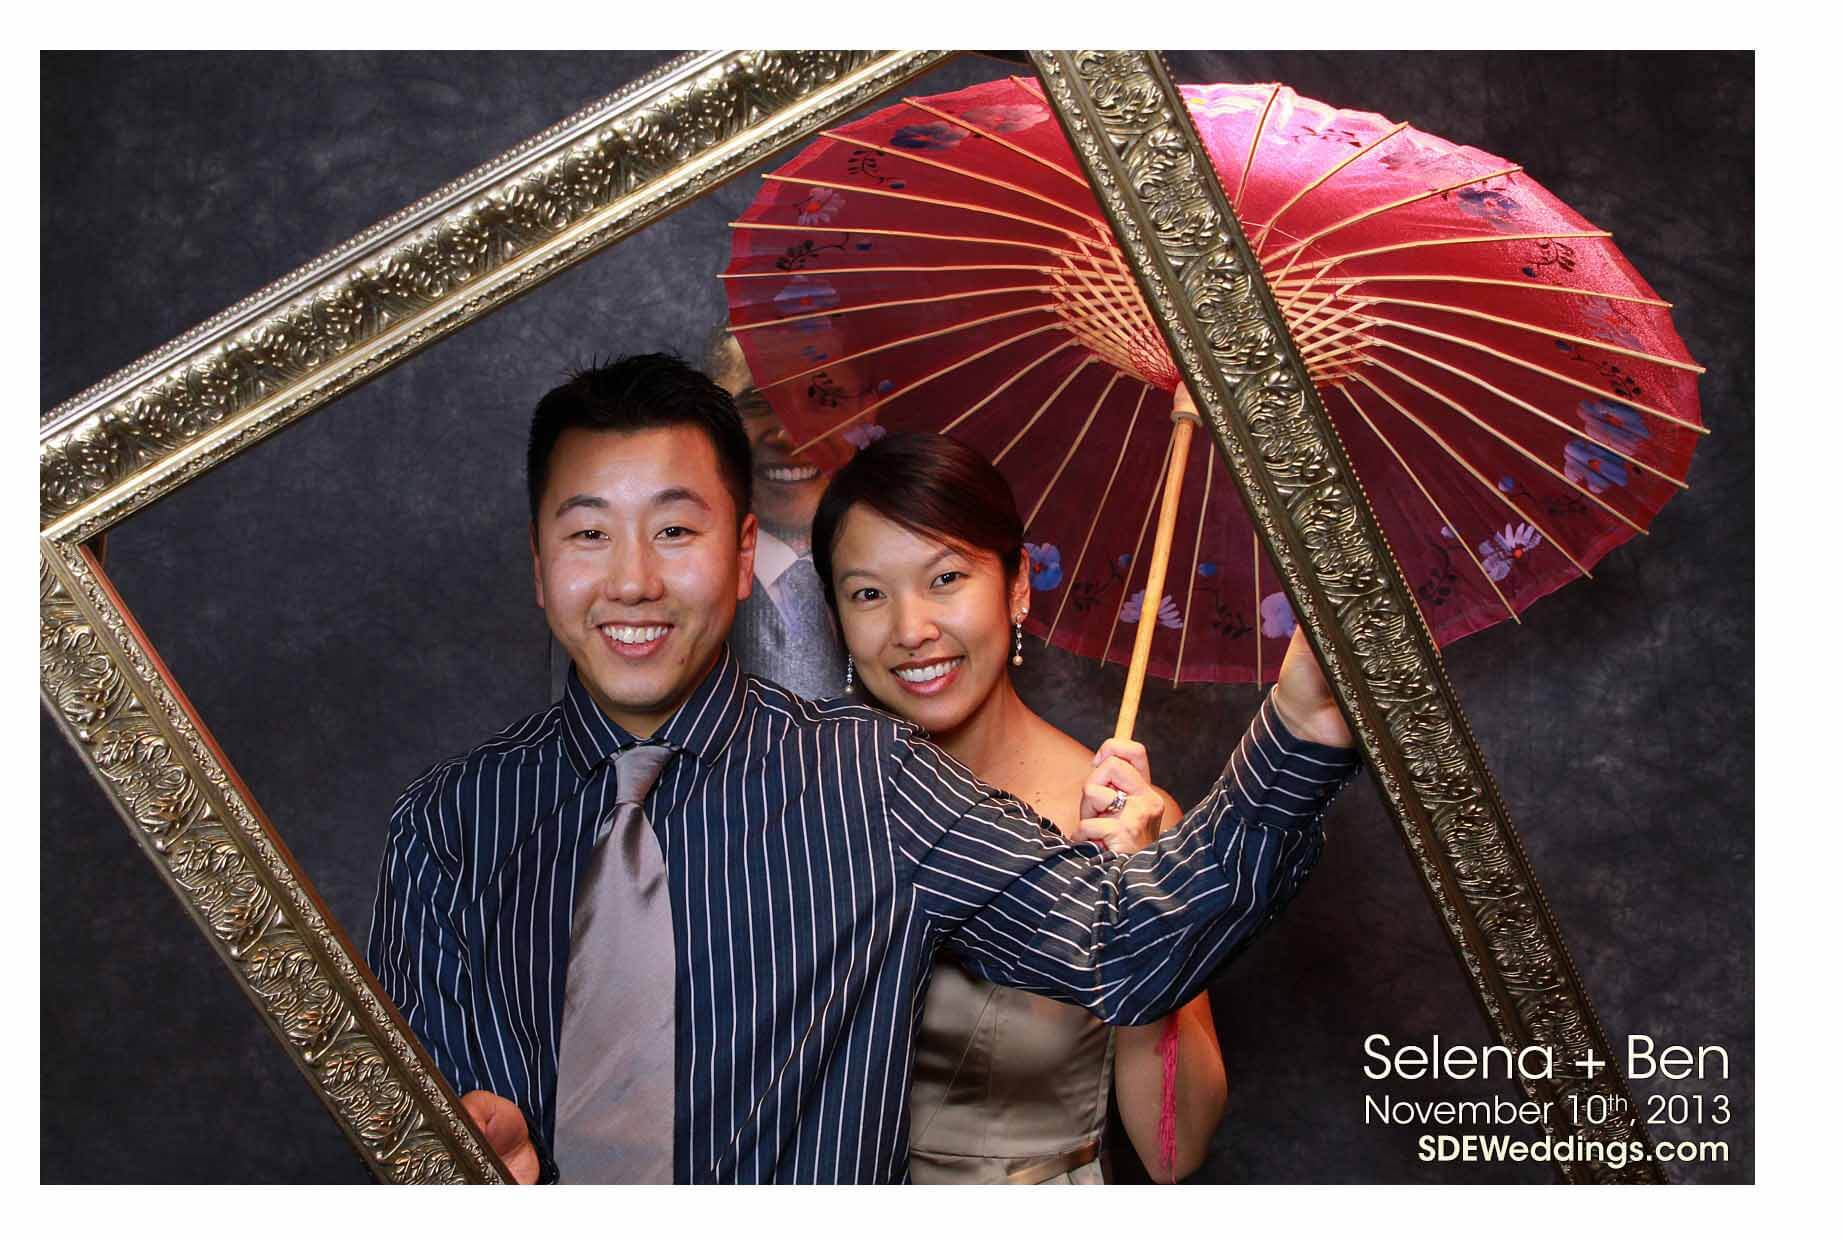 Toronto Wedding Photobooth Photos Ben Selena